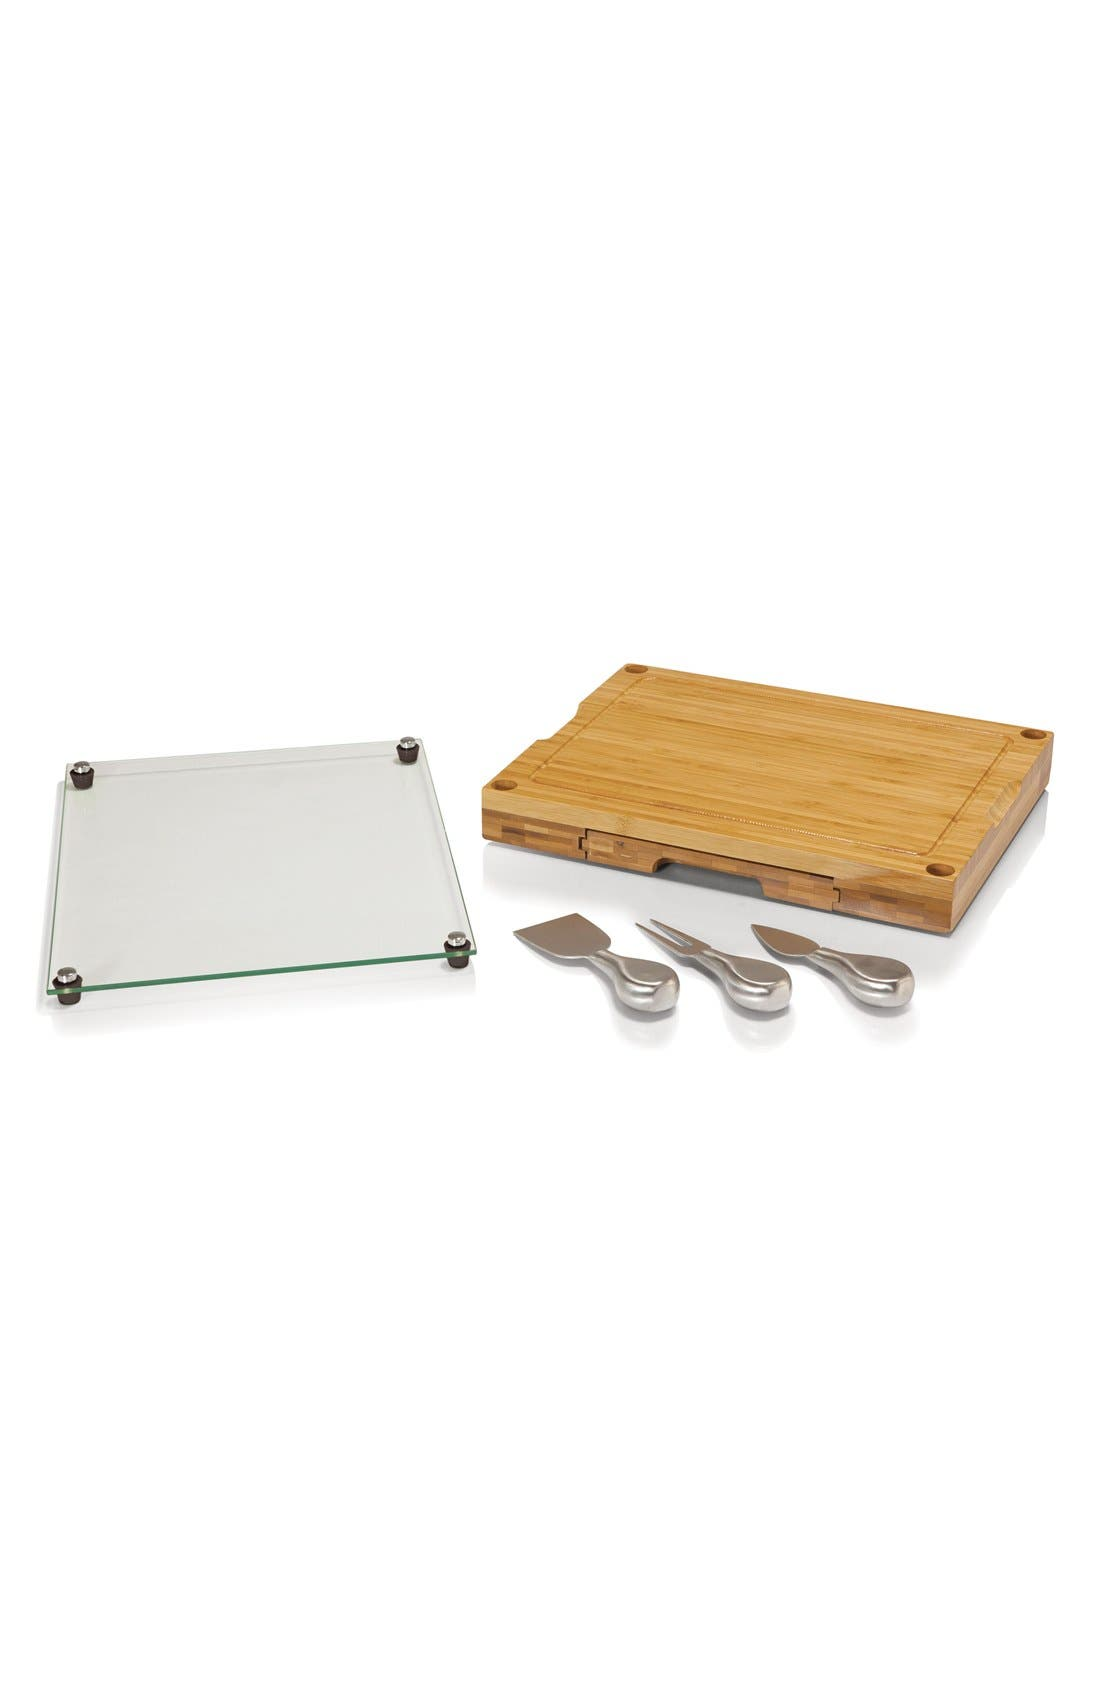 Alternate Image 1 Selected - Picnic Time 'Concerto' Cutting Board Set